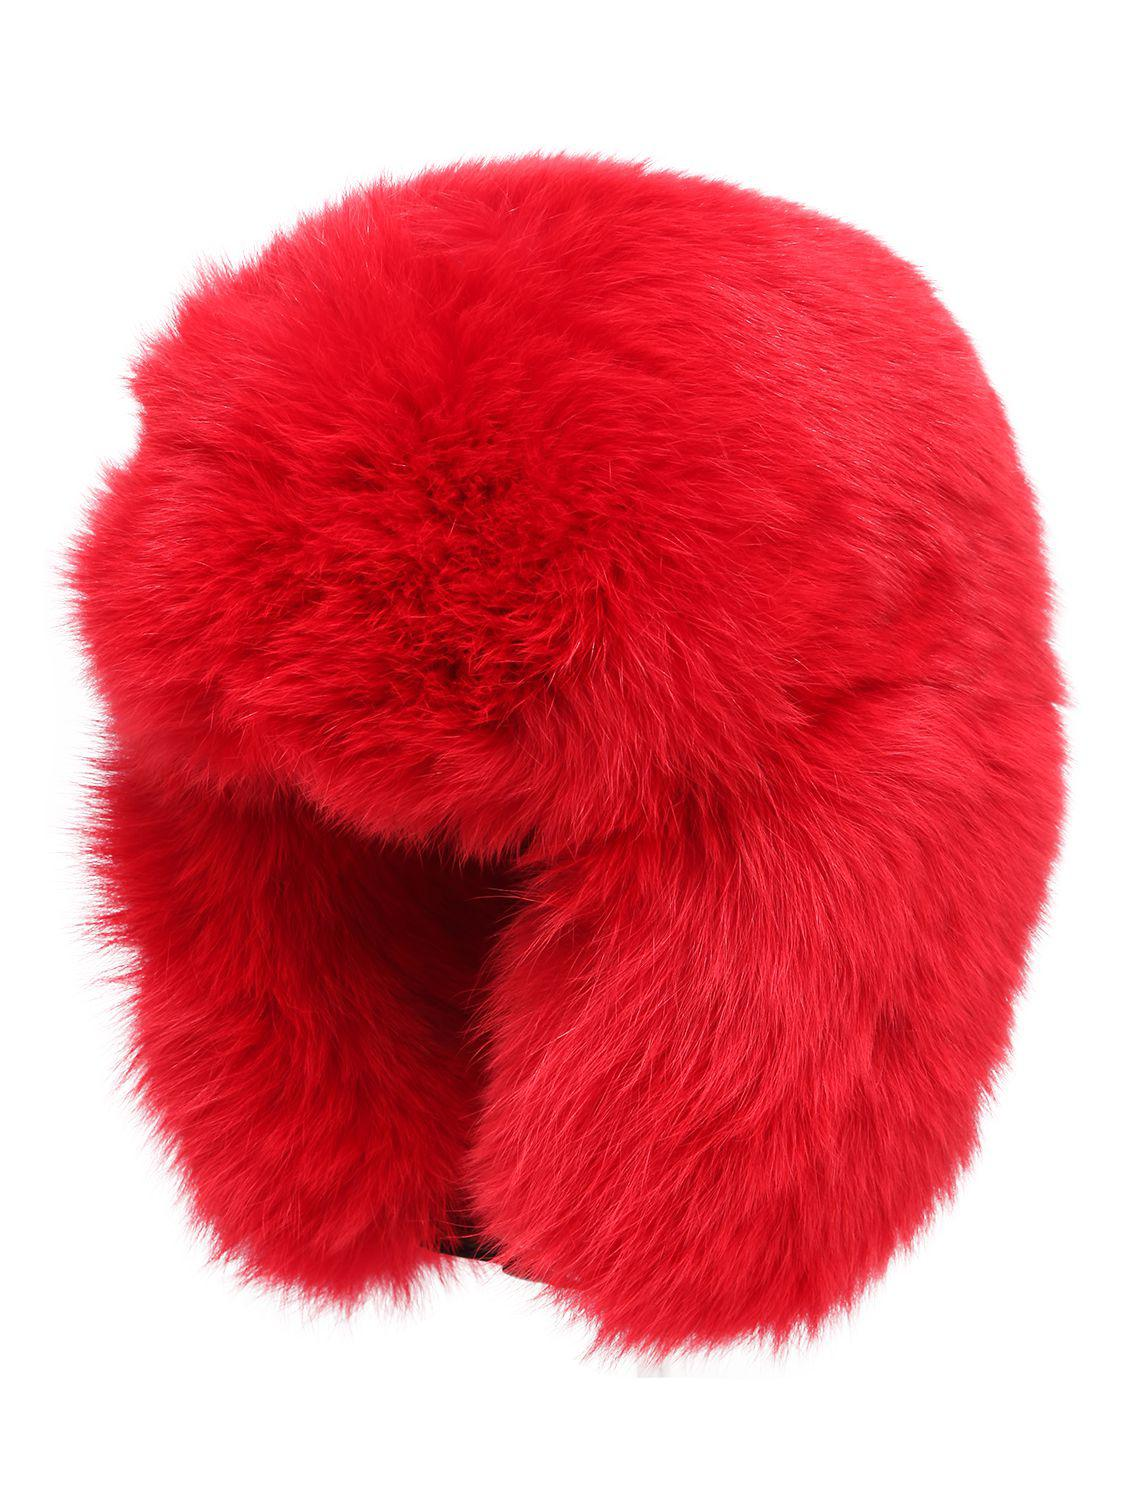 Moncler Grenoble Fox Fur Hat in Red - Lyst 921b0143ea0